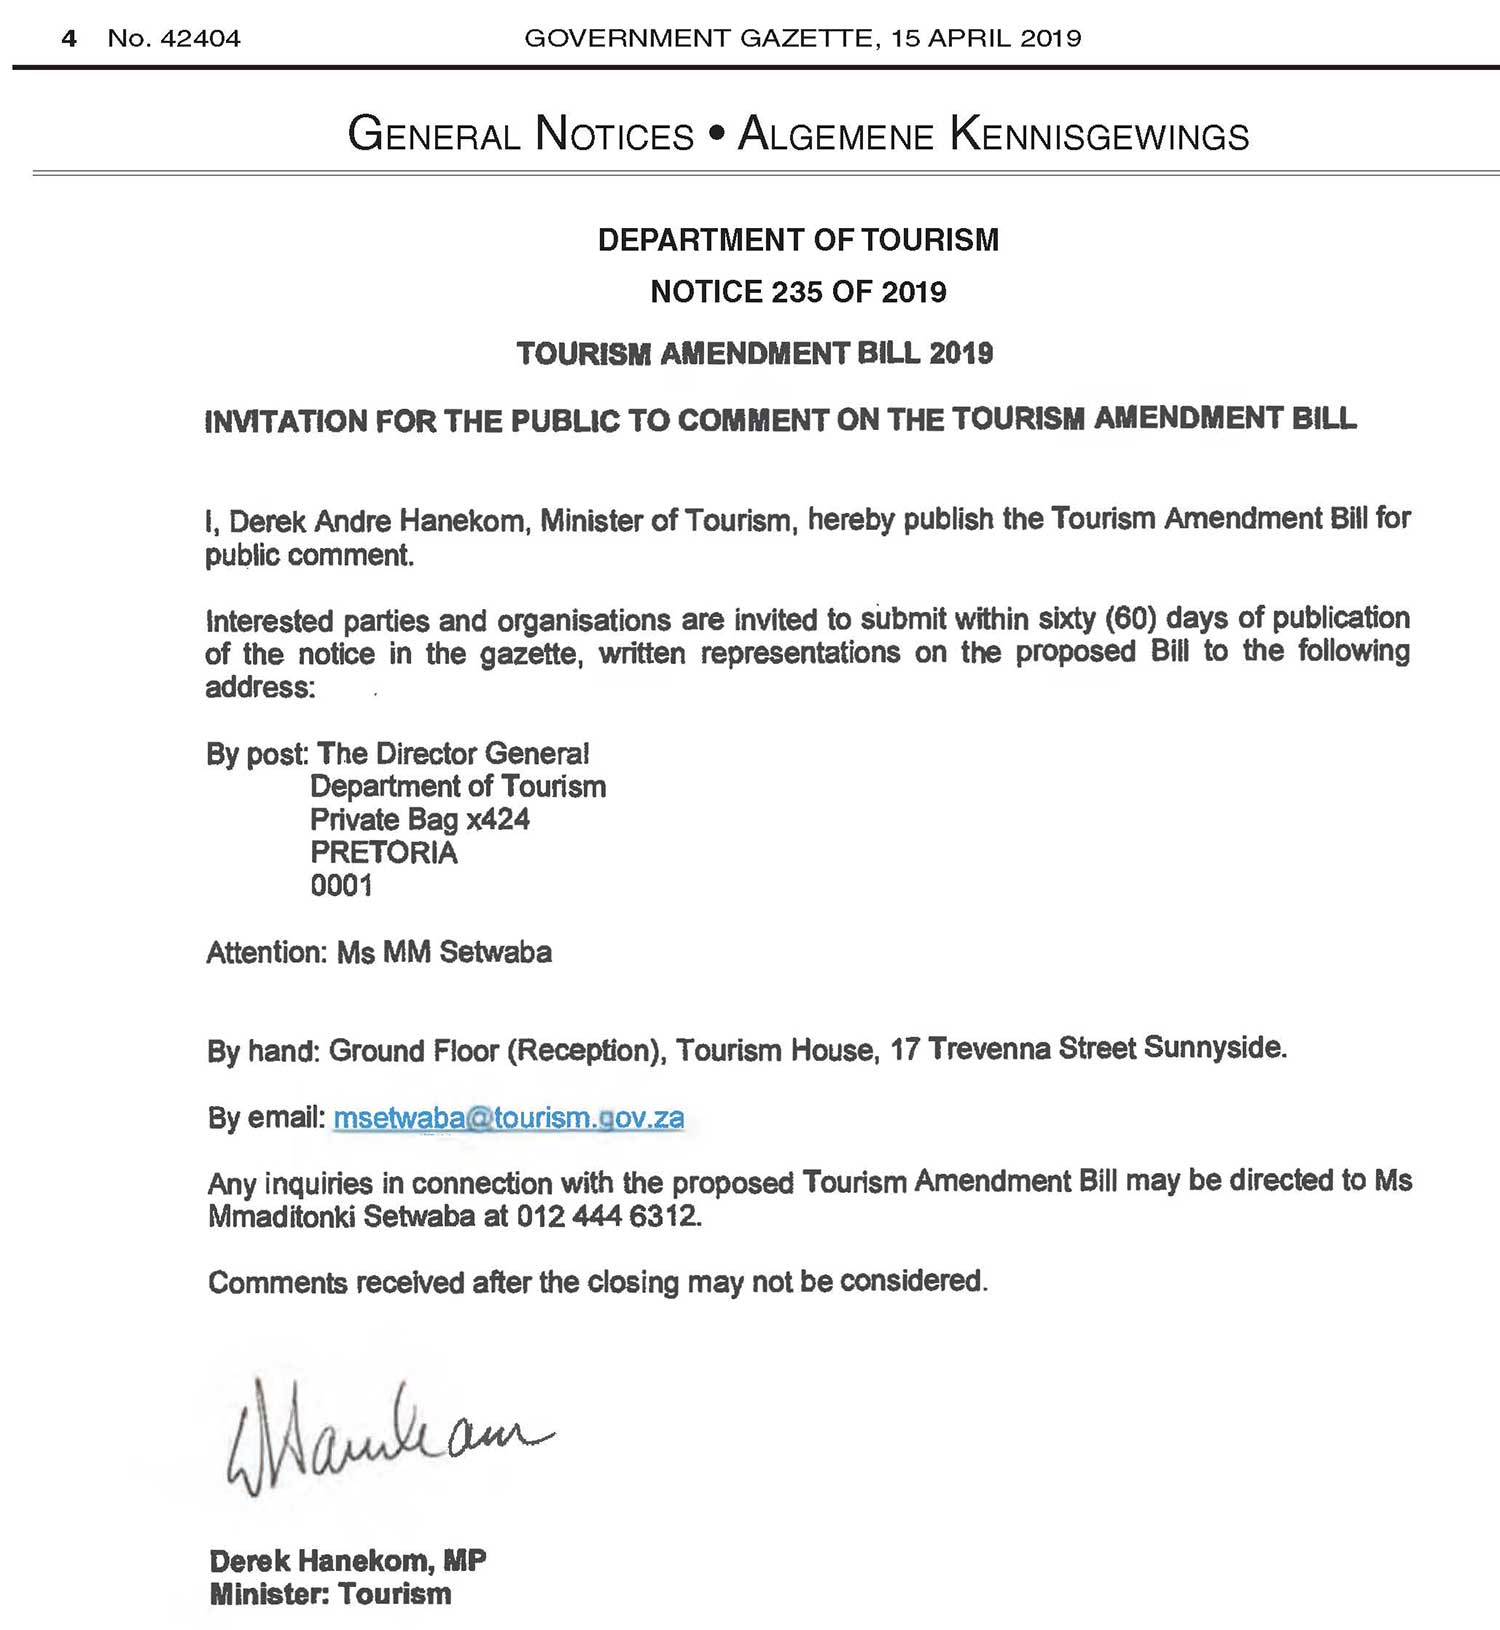 Tourism Draft Amendment Bill - Notice 235 of 2019